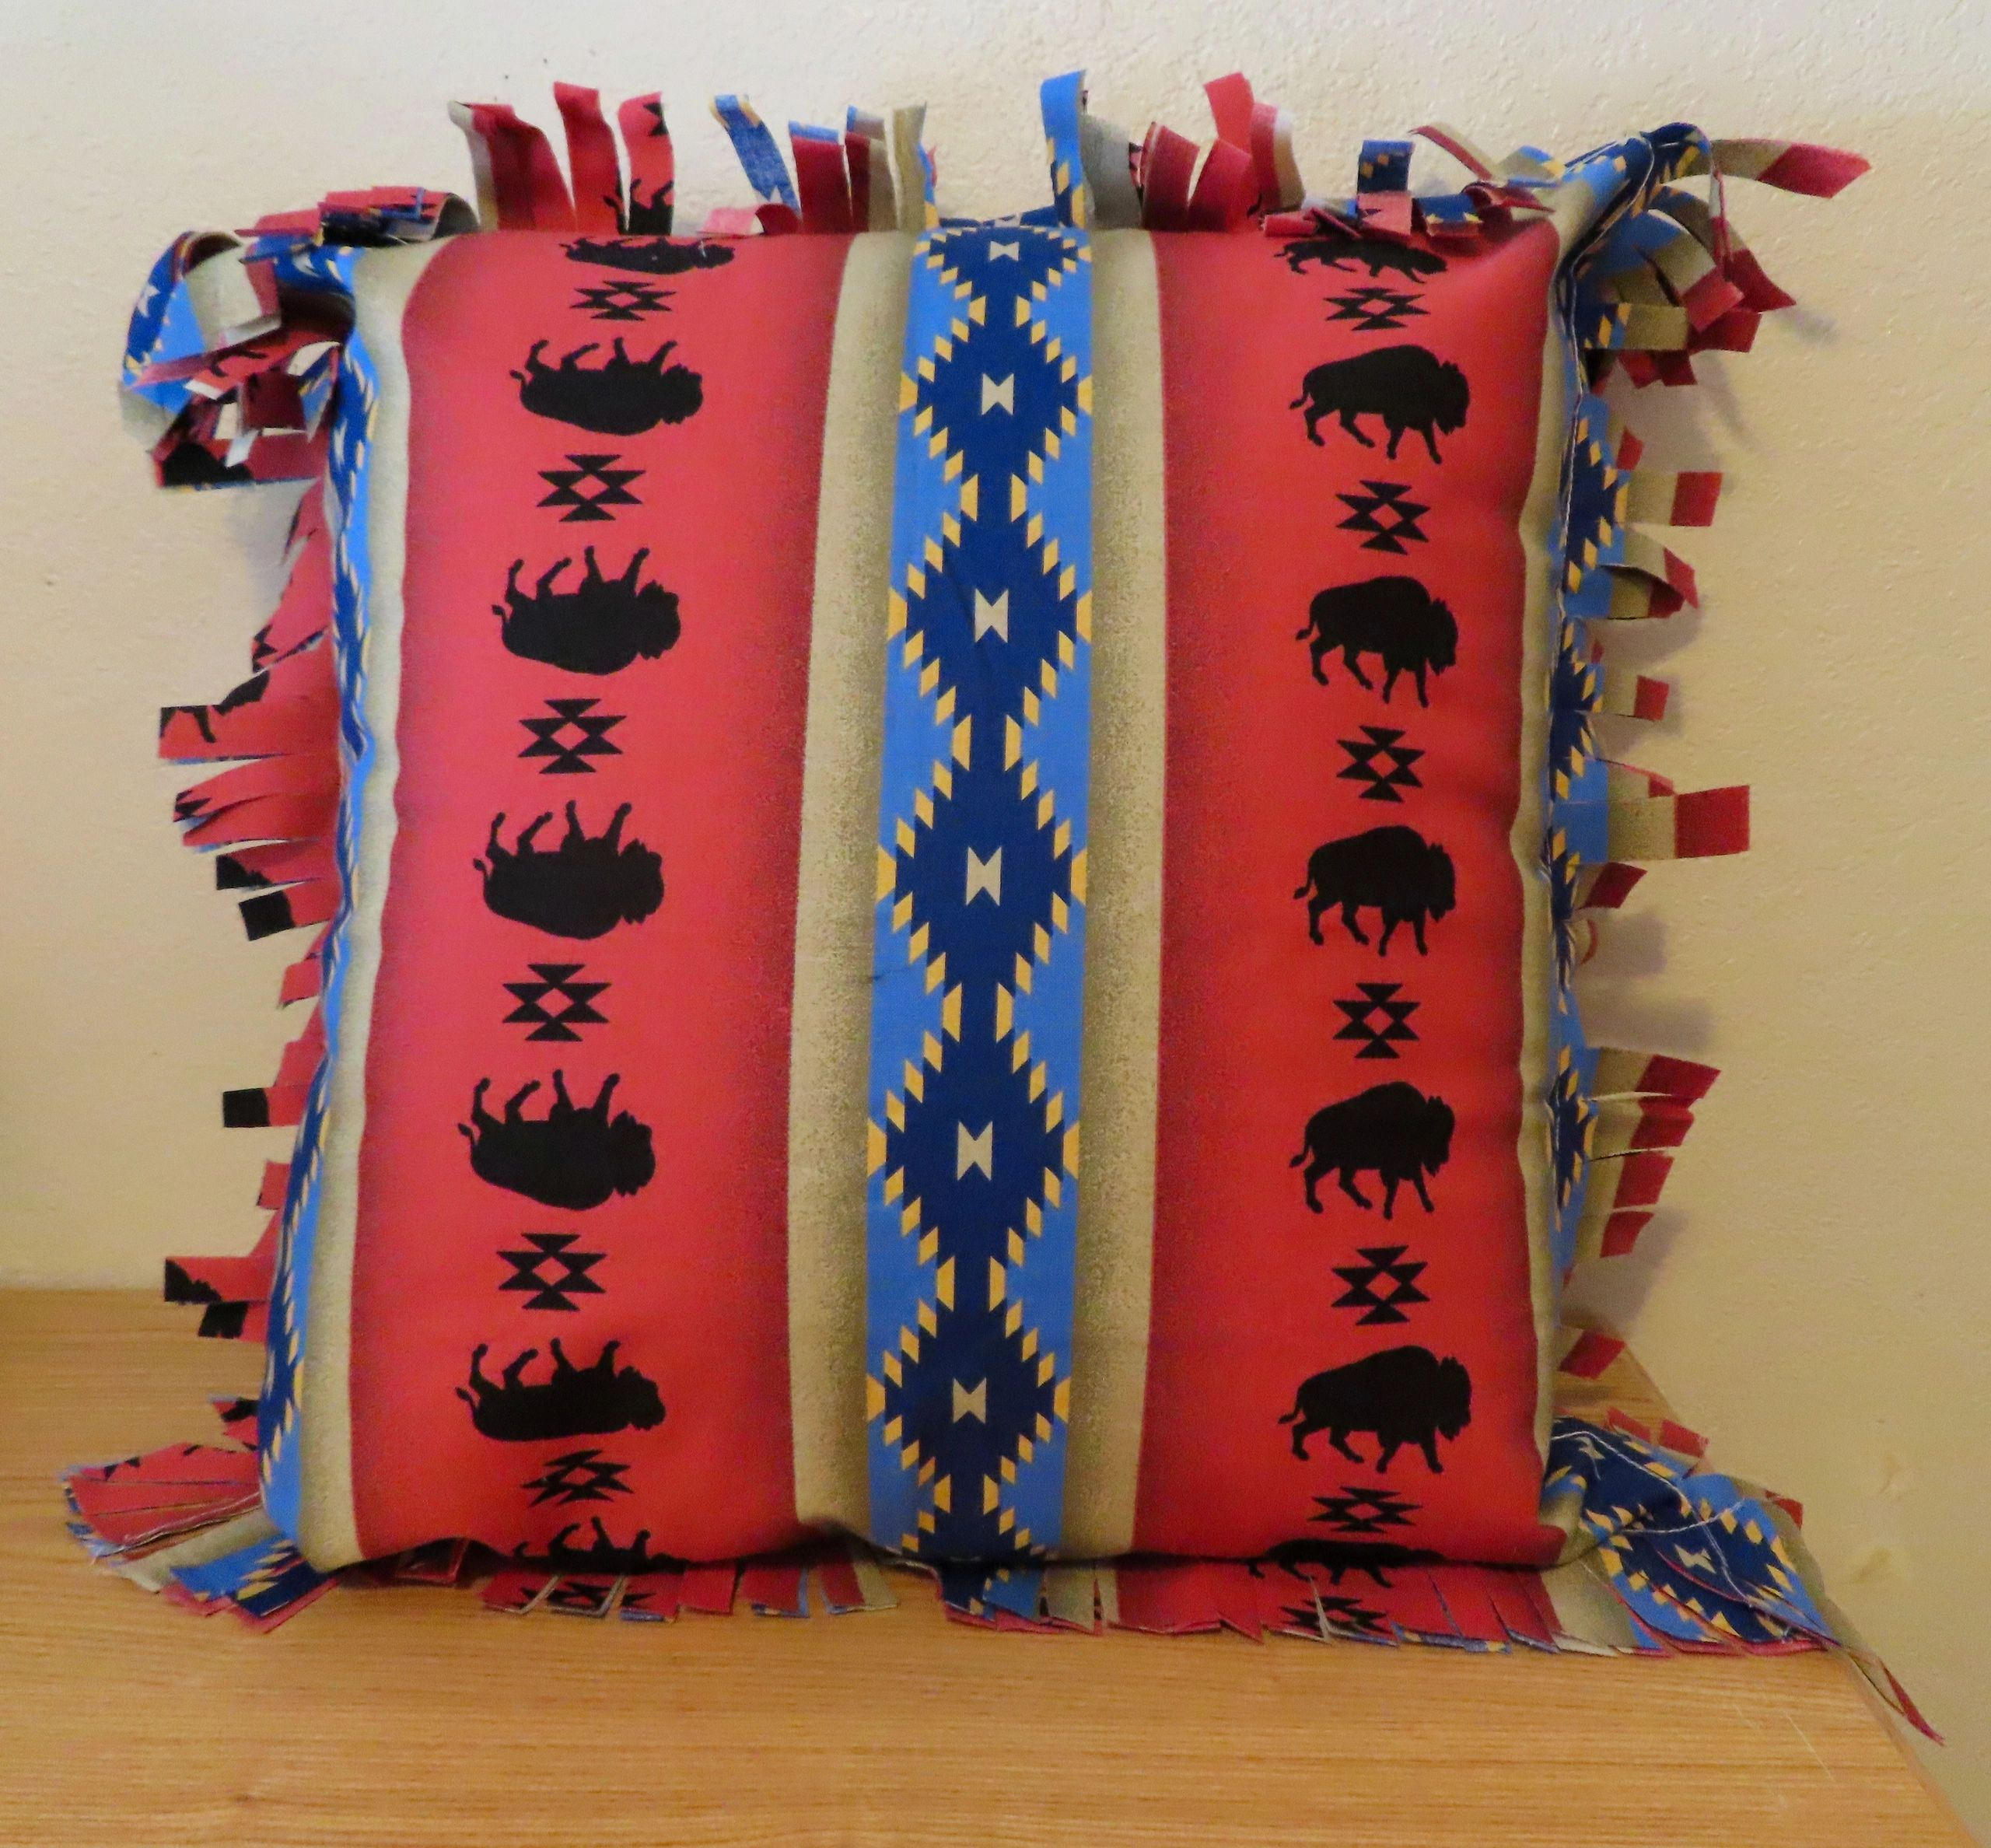 Native American Pillows for sale